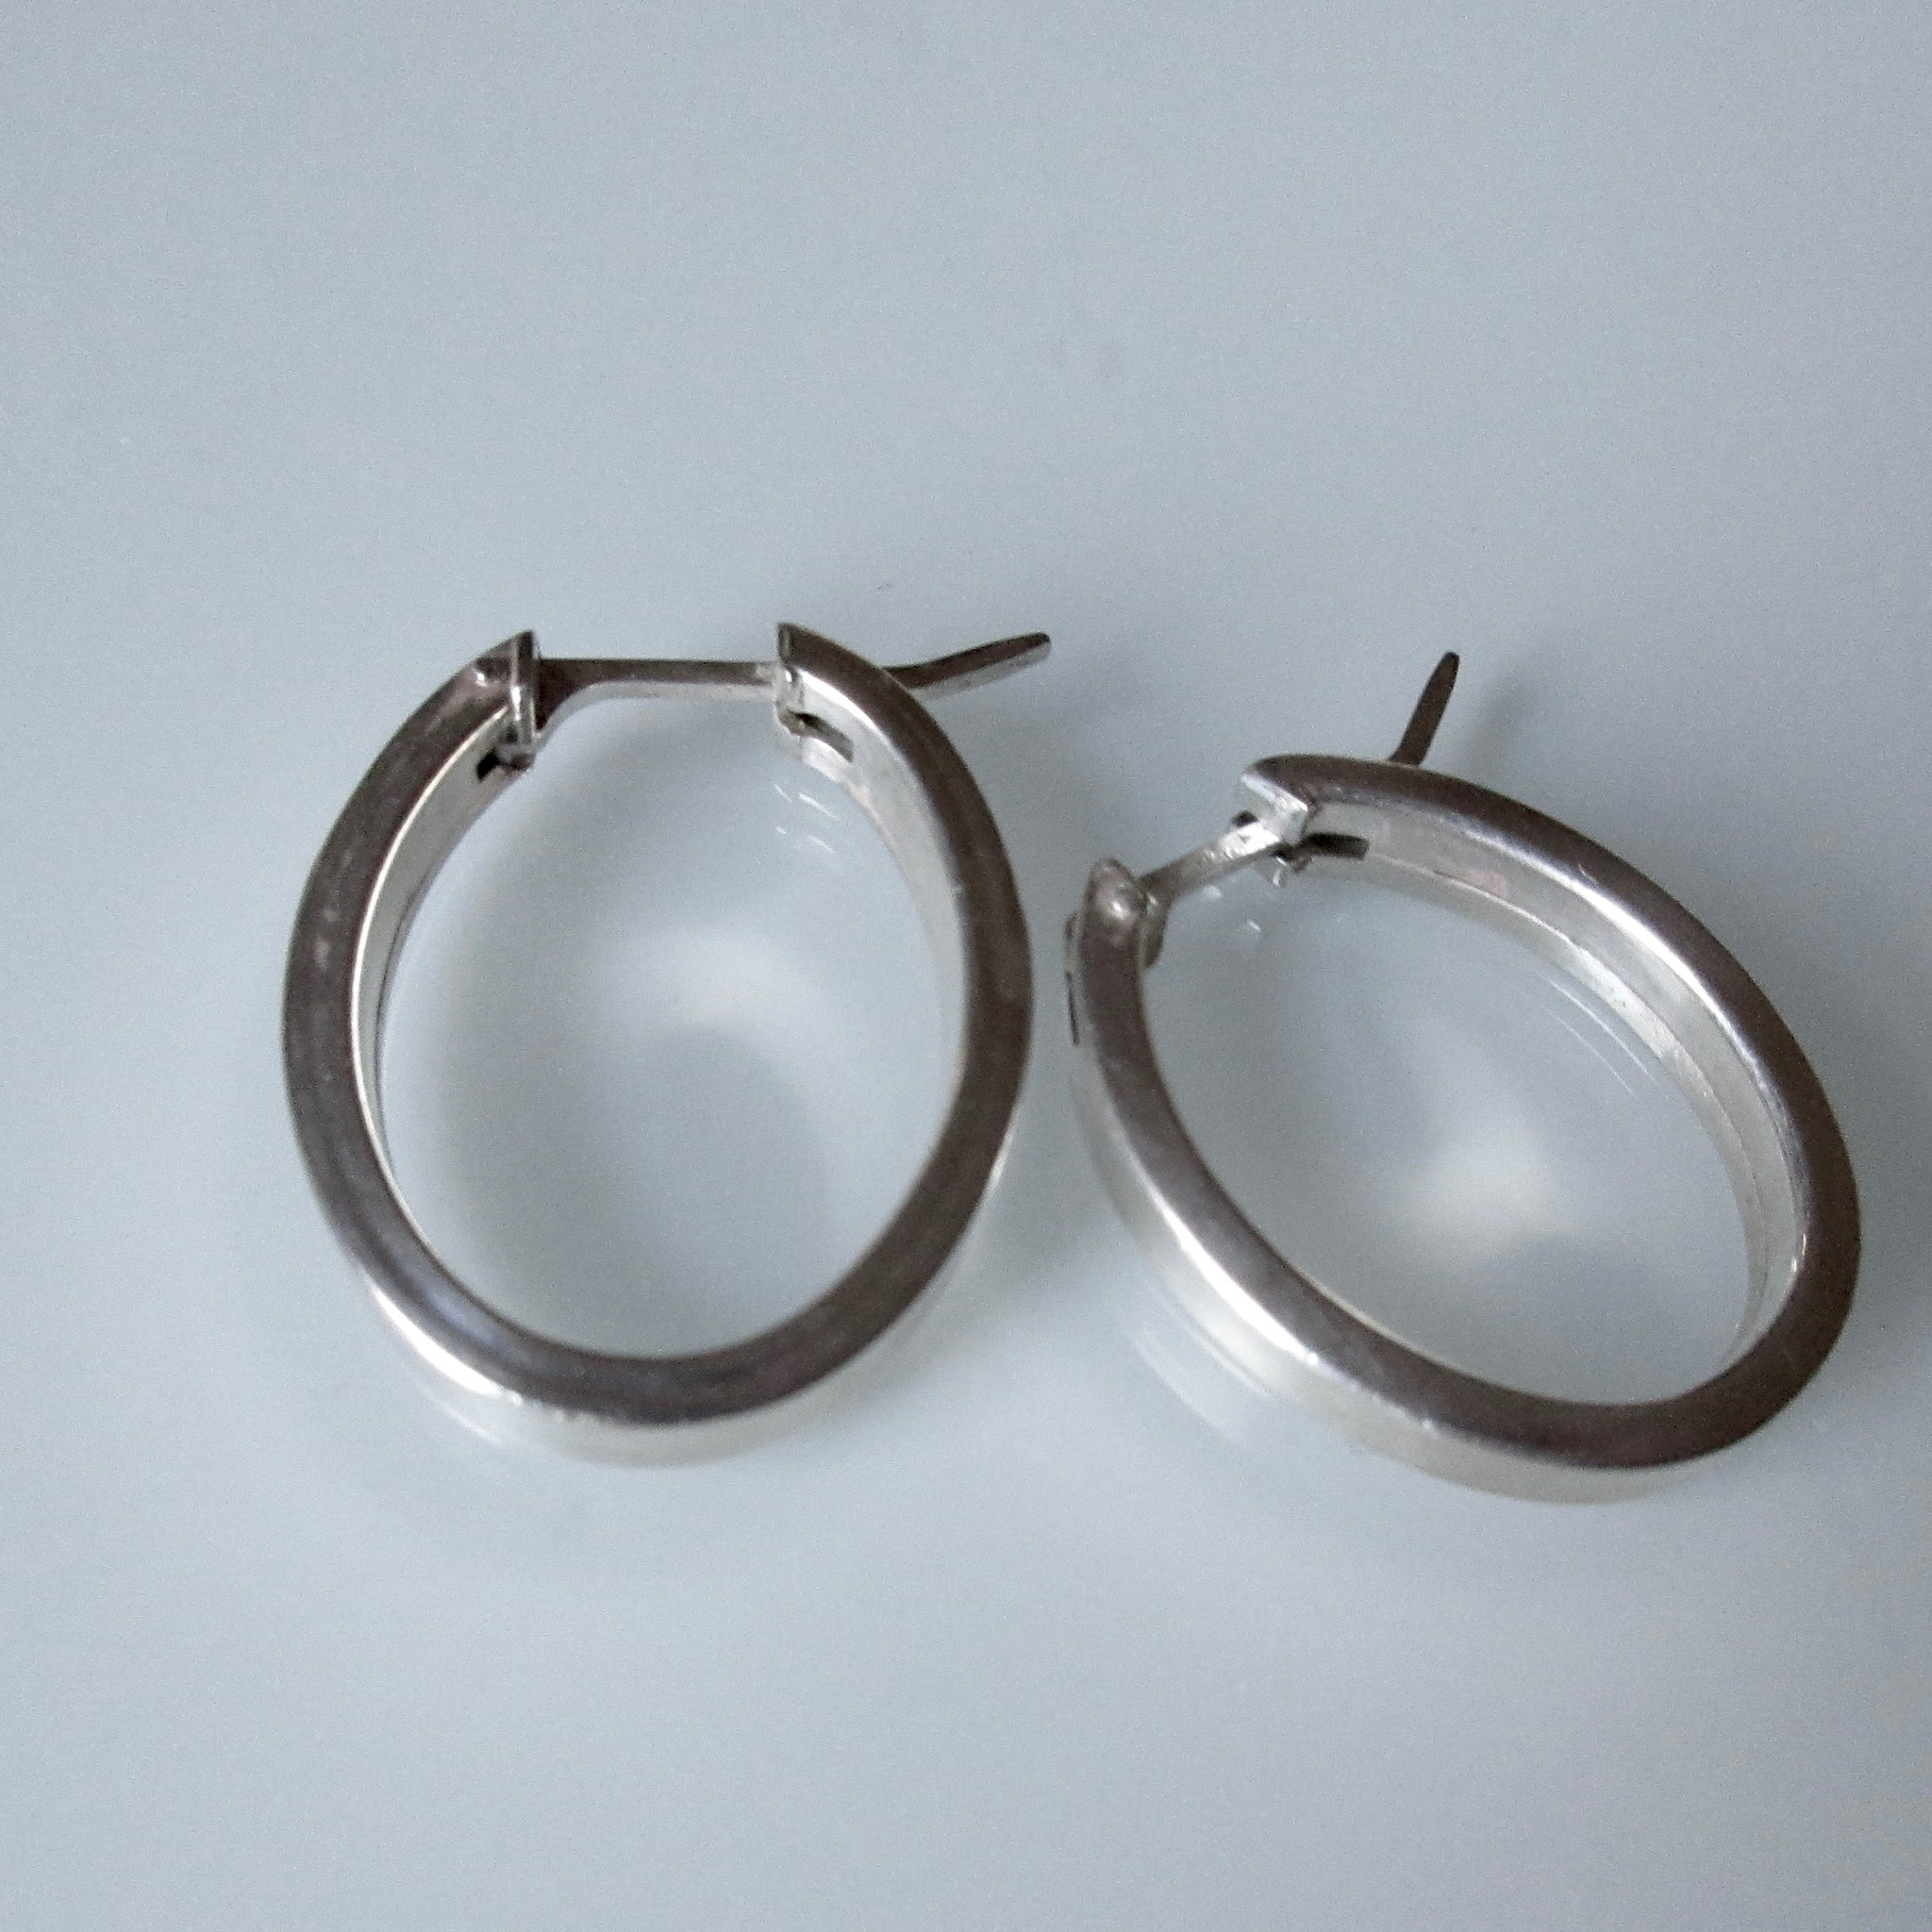 Oval Contemporary Sterling Silver Hoop Earrings